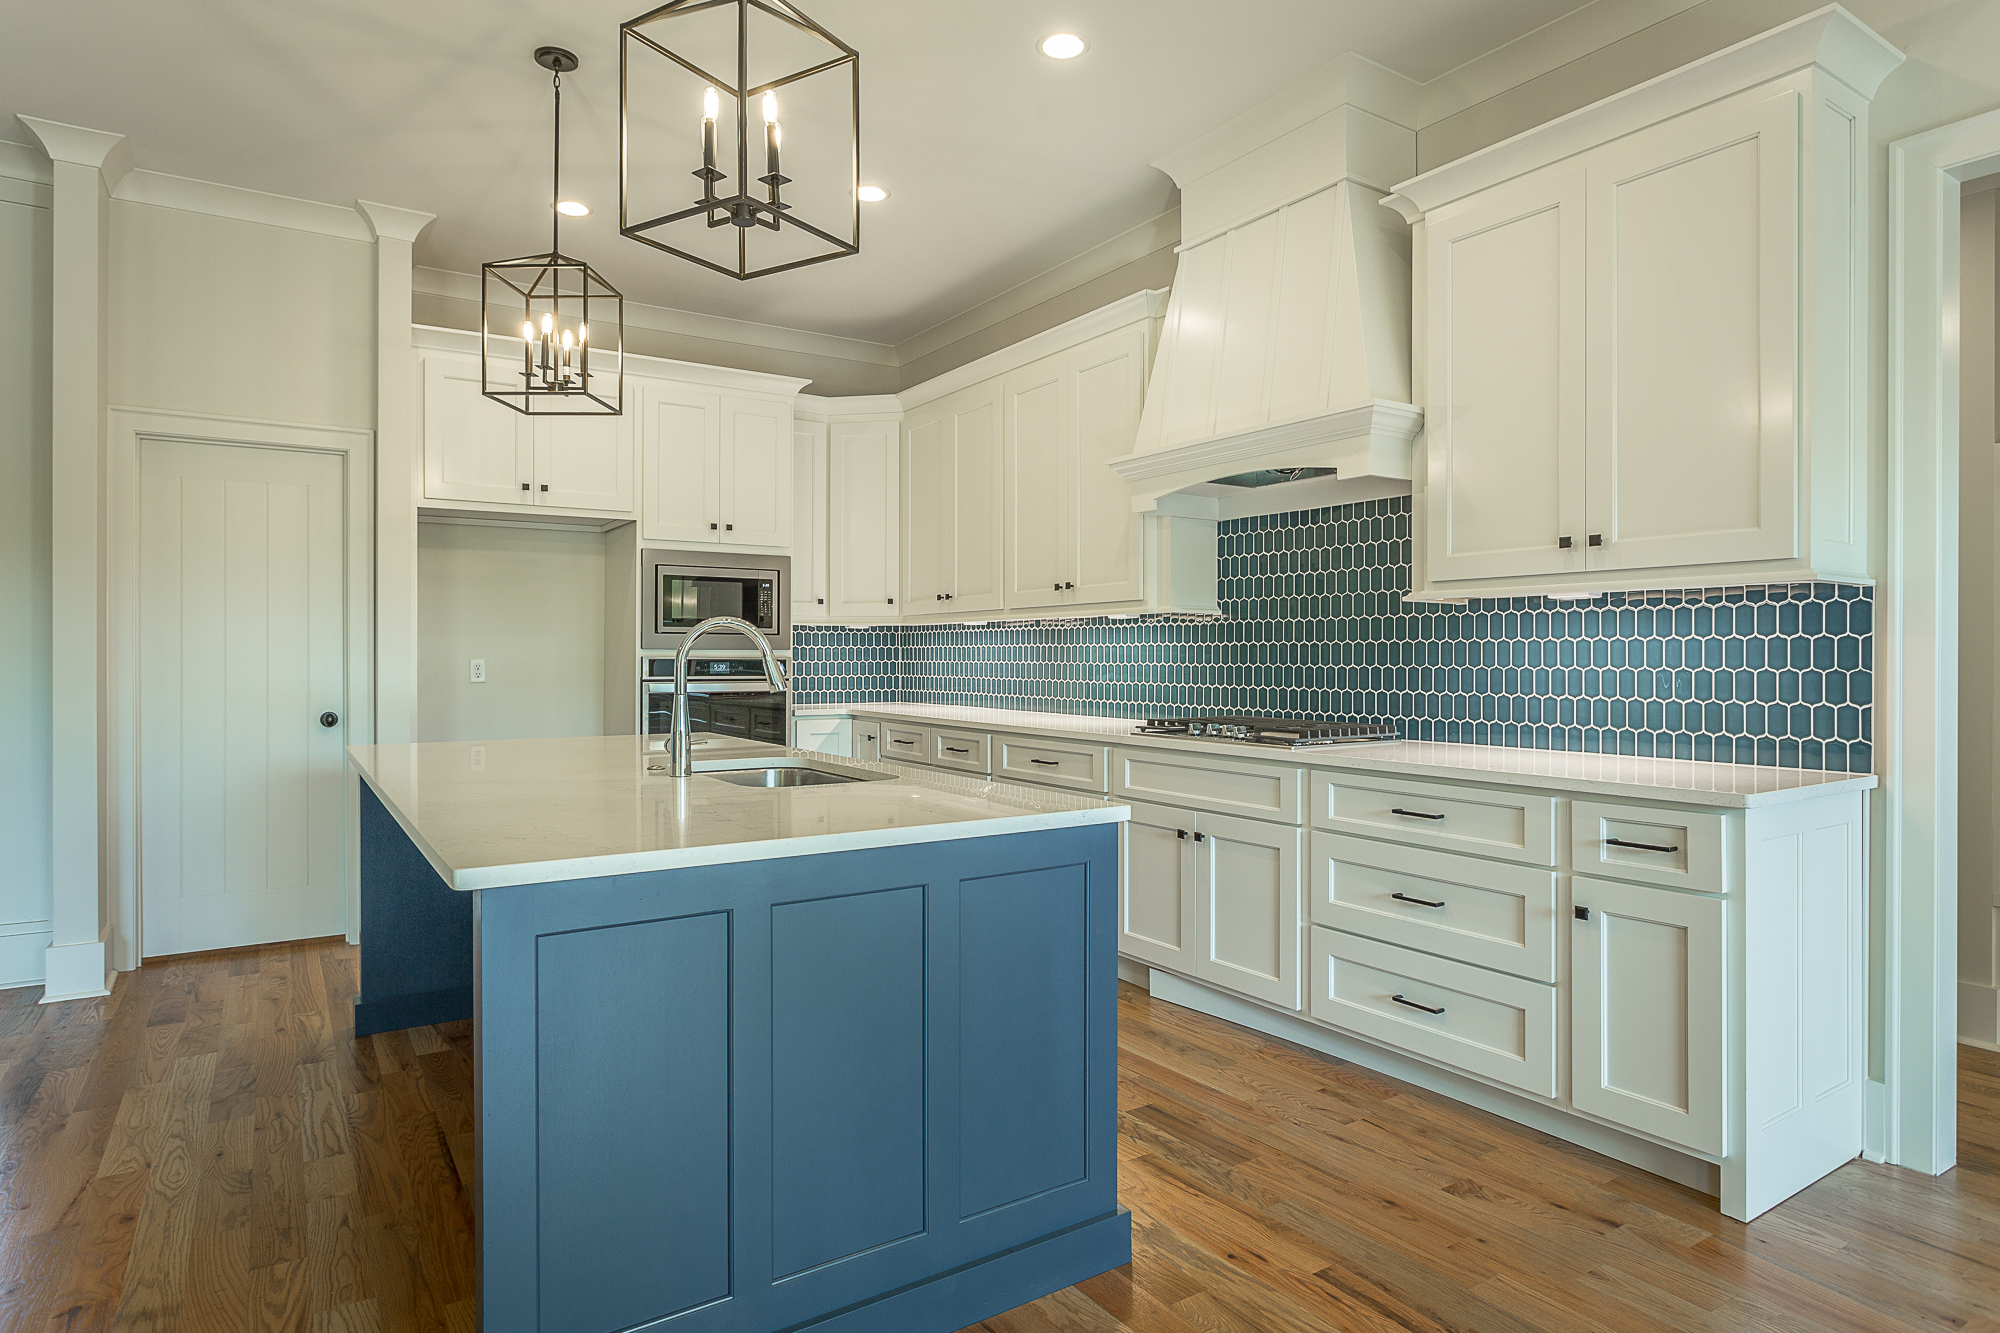 lot 6 selcer kitchen angle.jpg